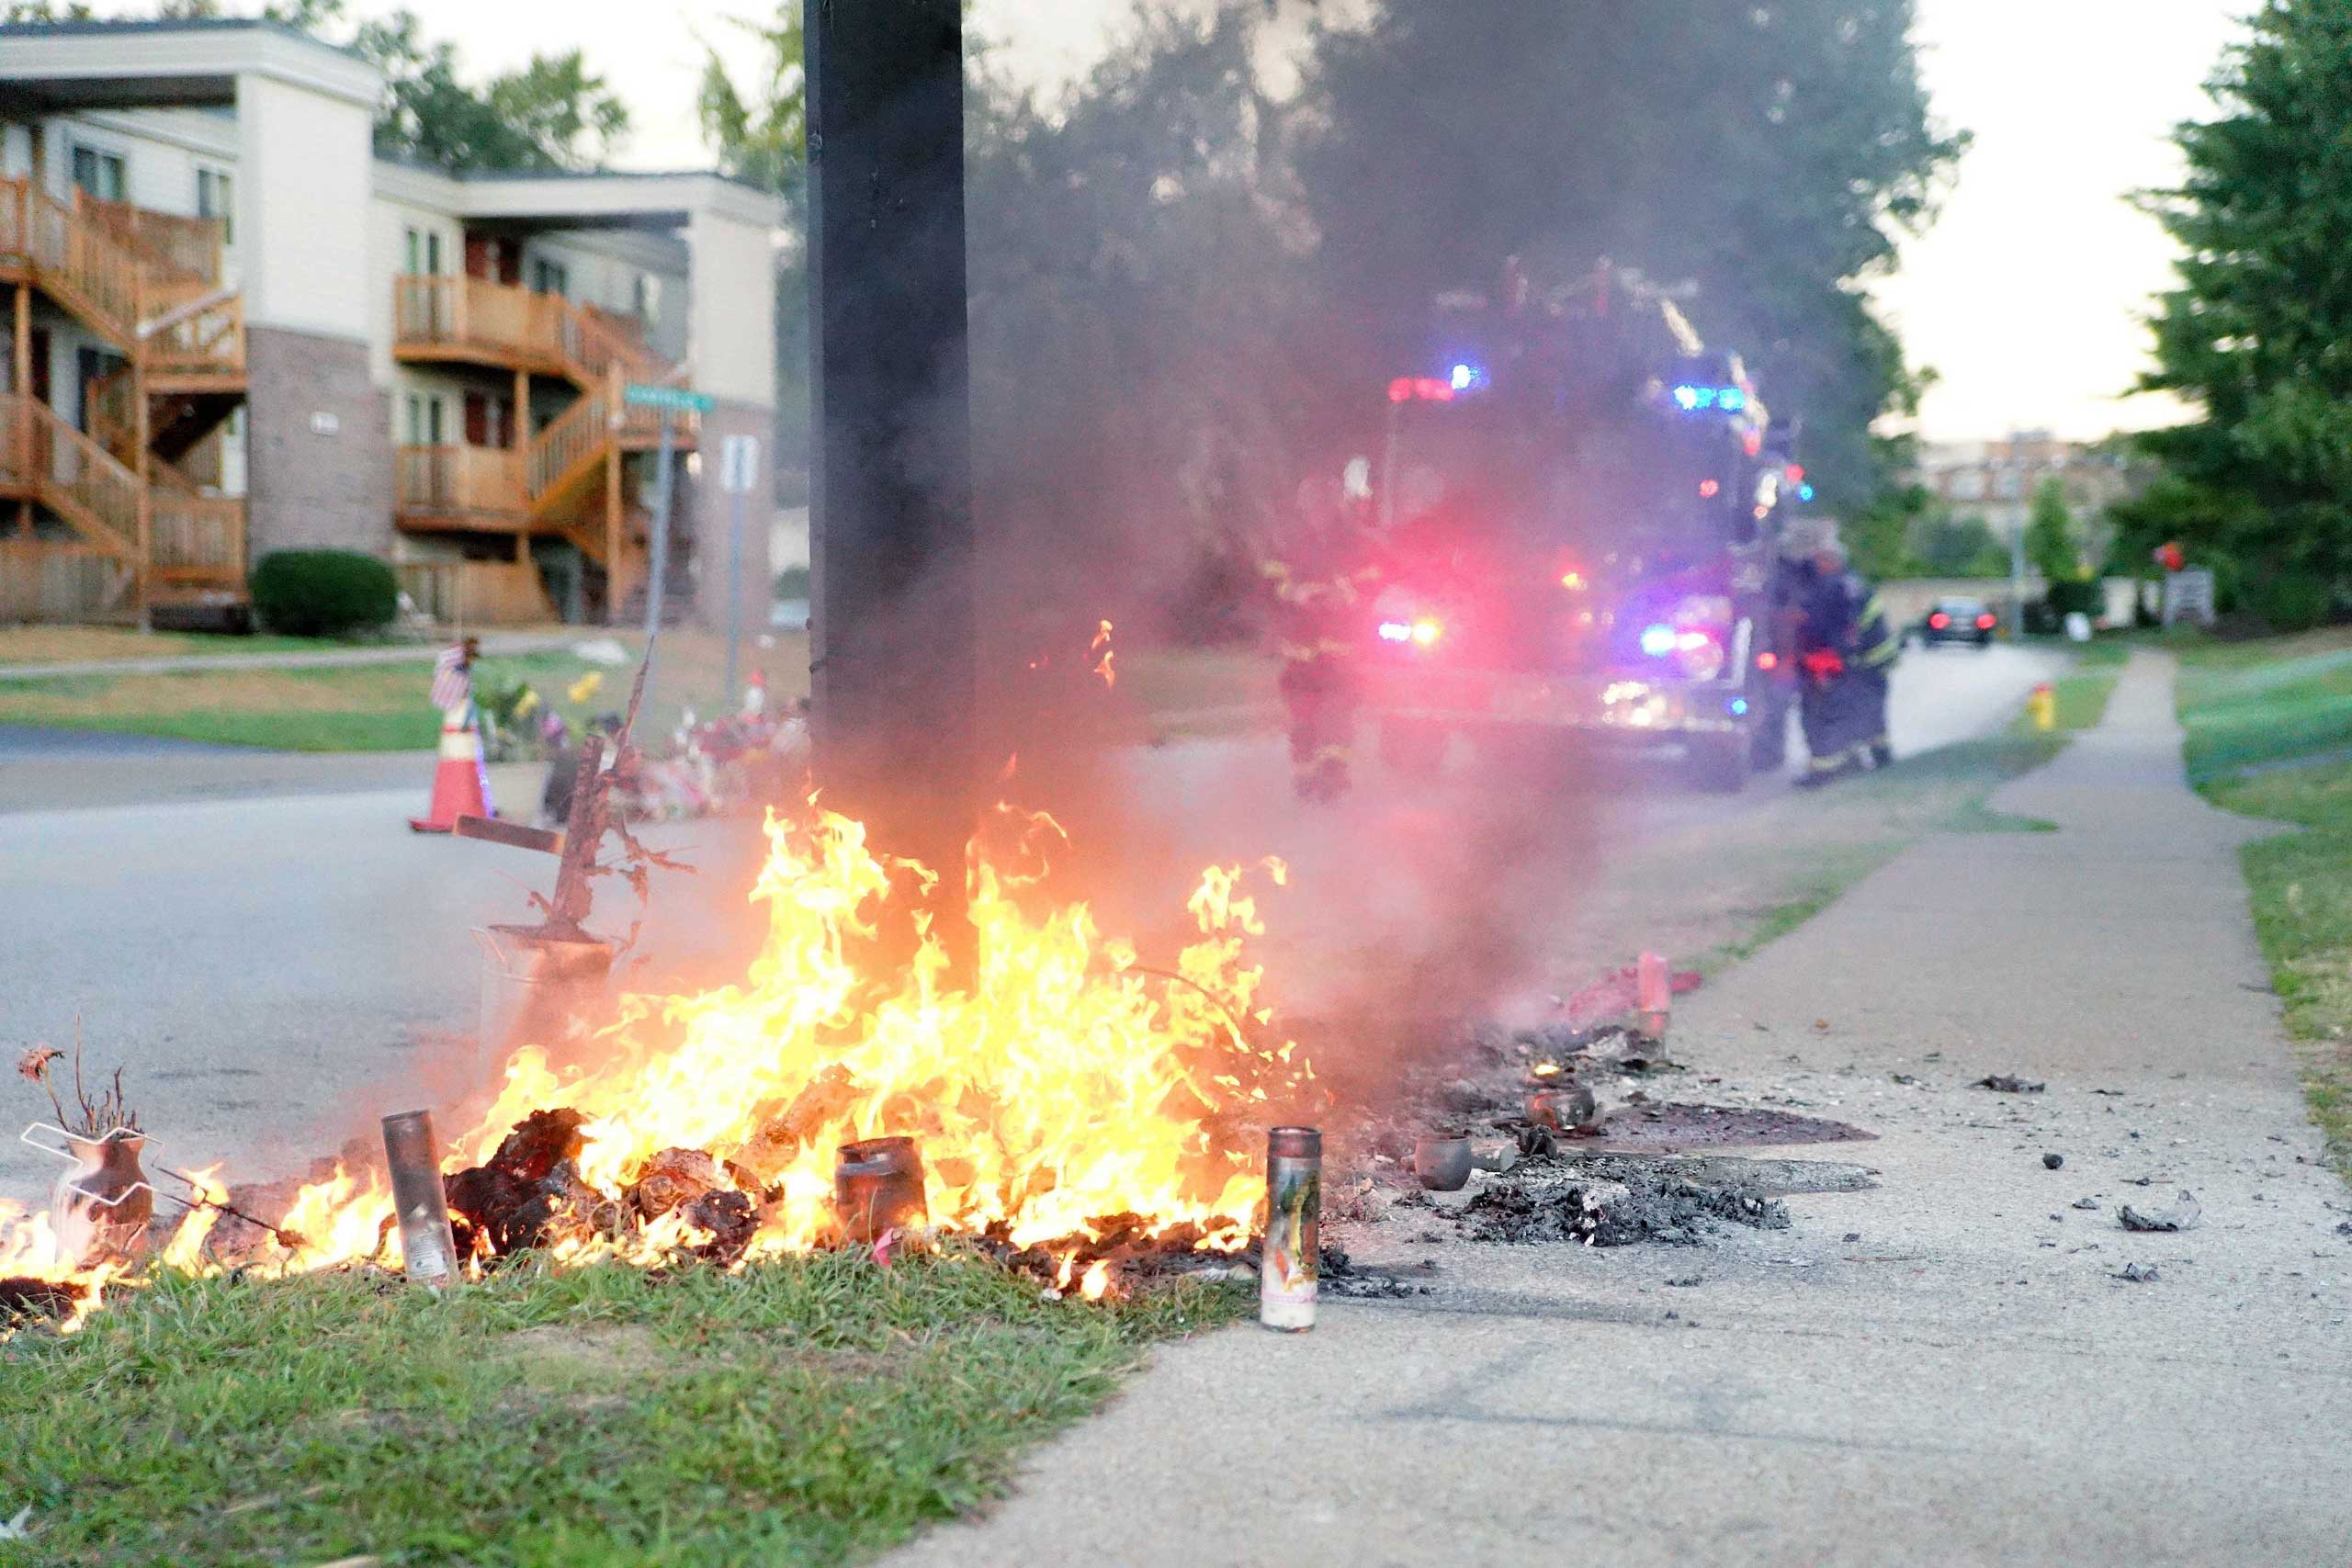 A fire on Sept. 23, 2014 burned a memorial for  Michael Brown on the site where he was killed. The memorial was later rebuilt.